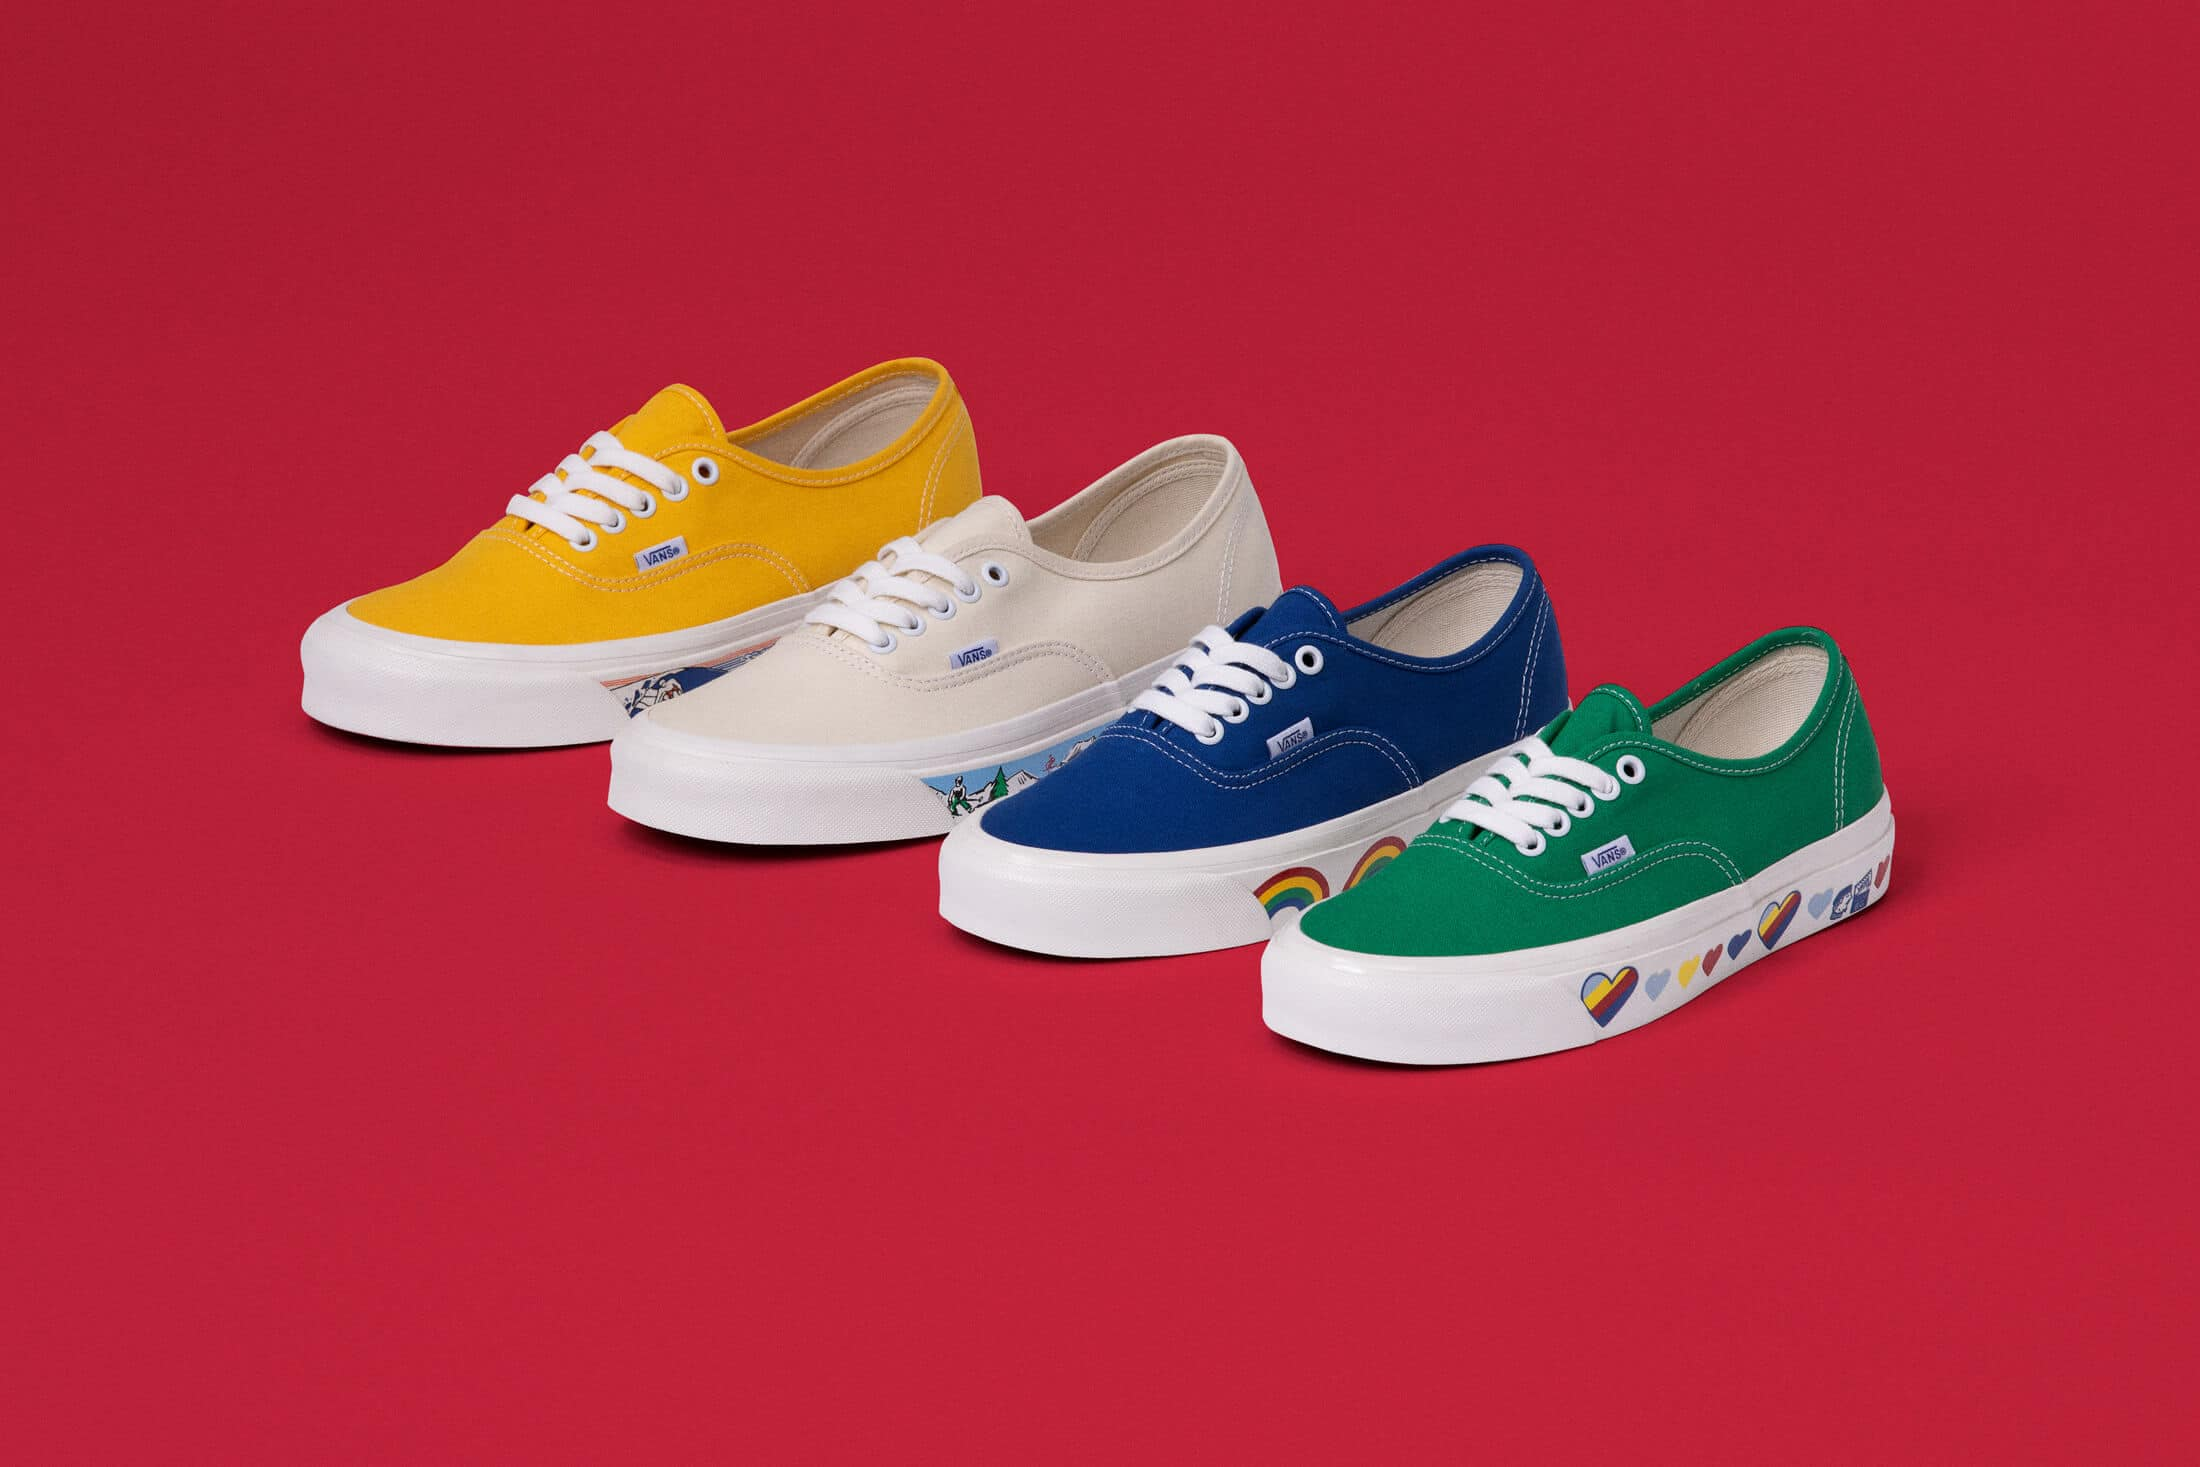 Vans Anaheim Factory Collection SS21